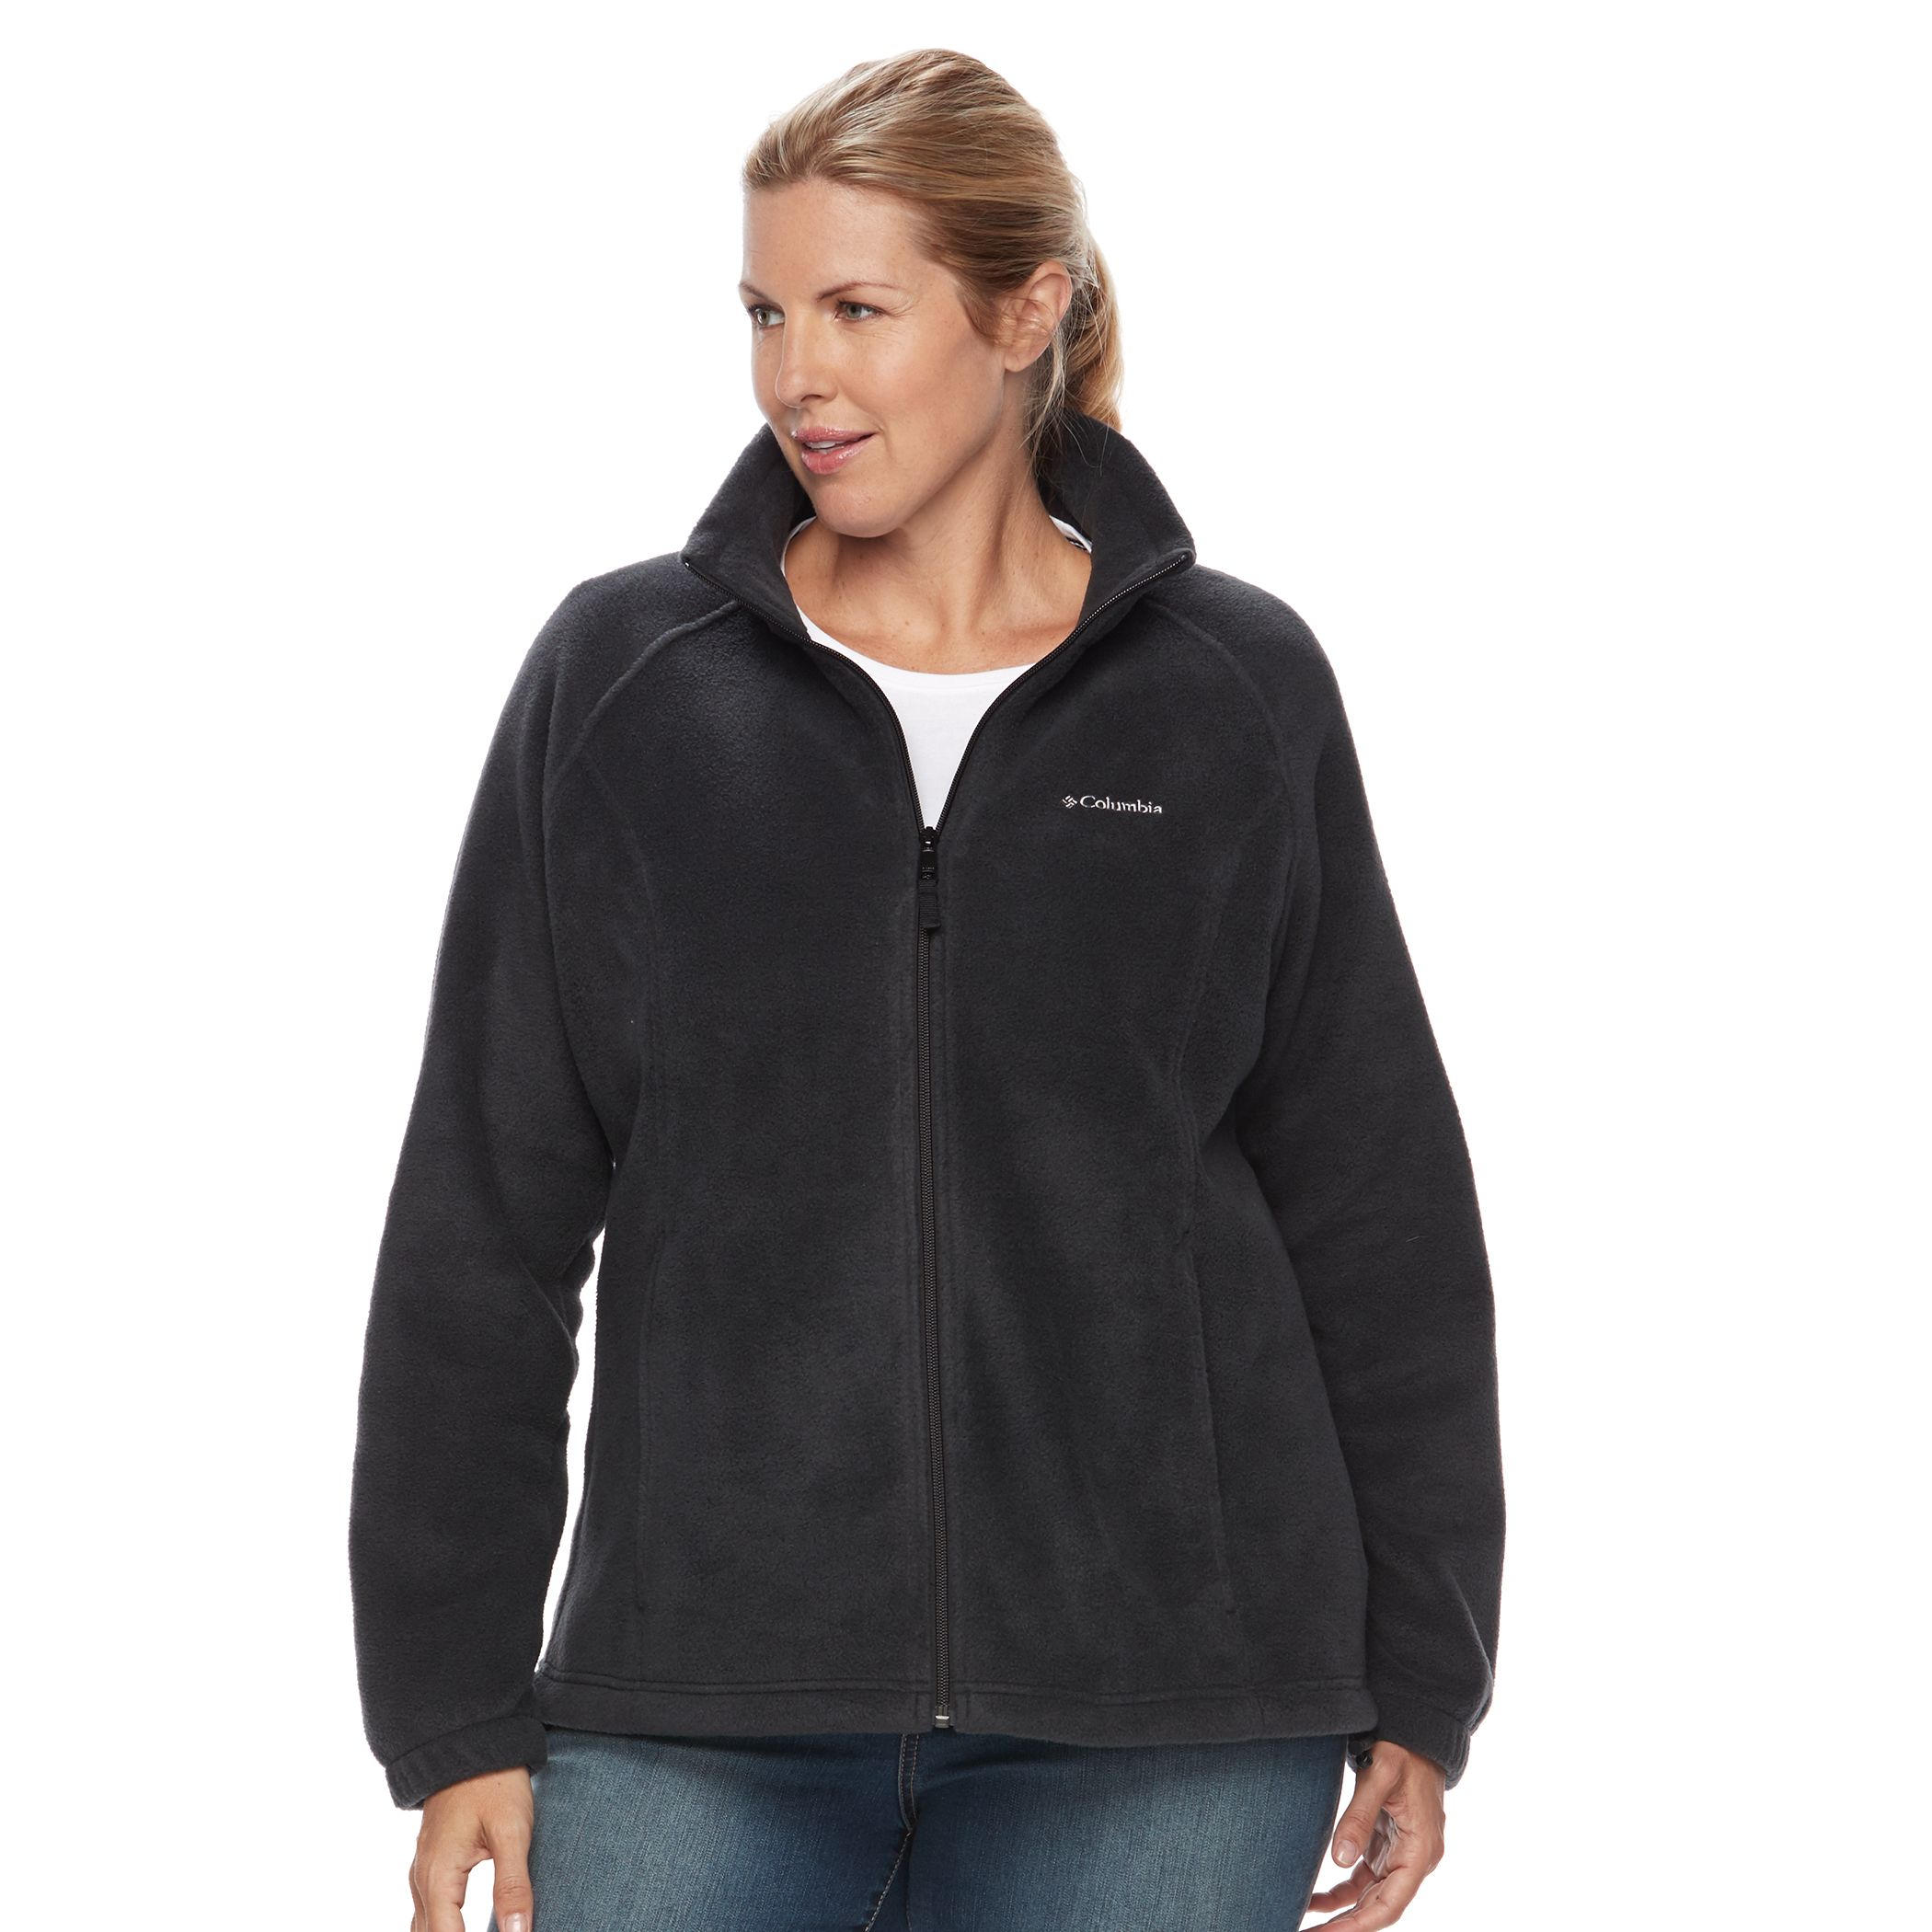 Women's plus size coats and jackets